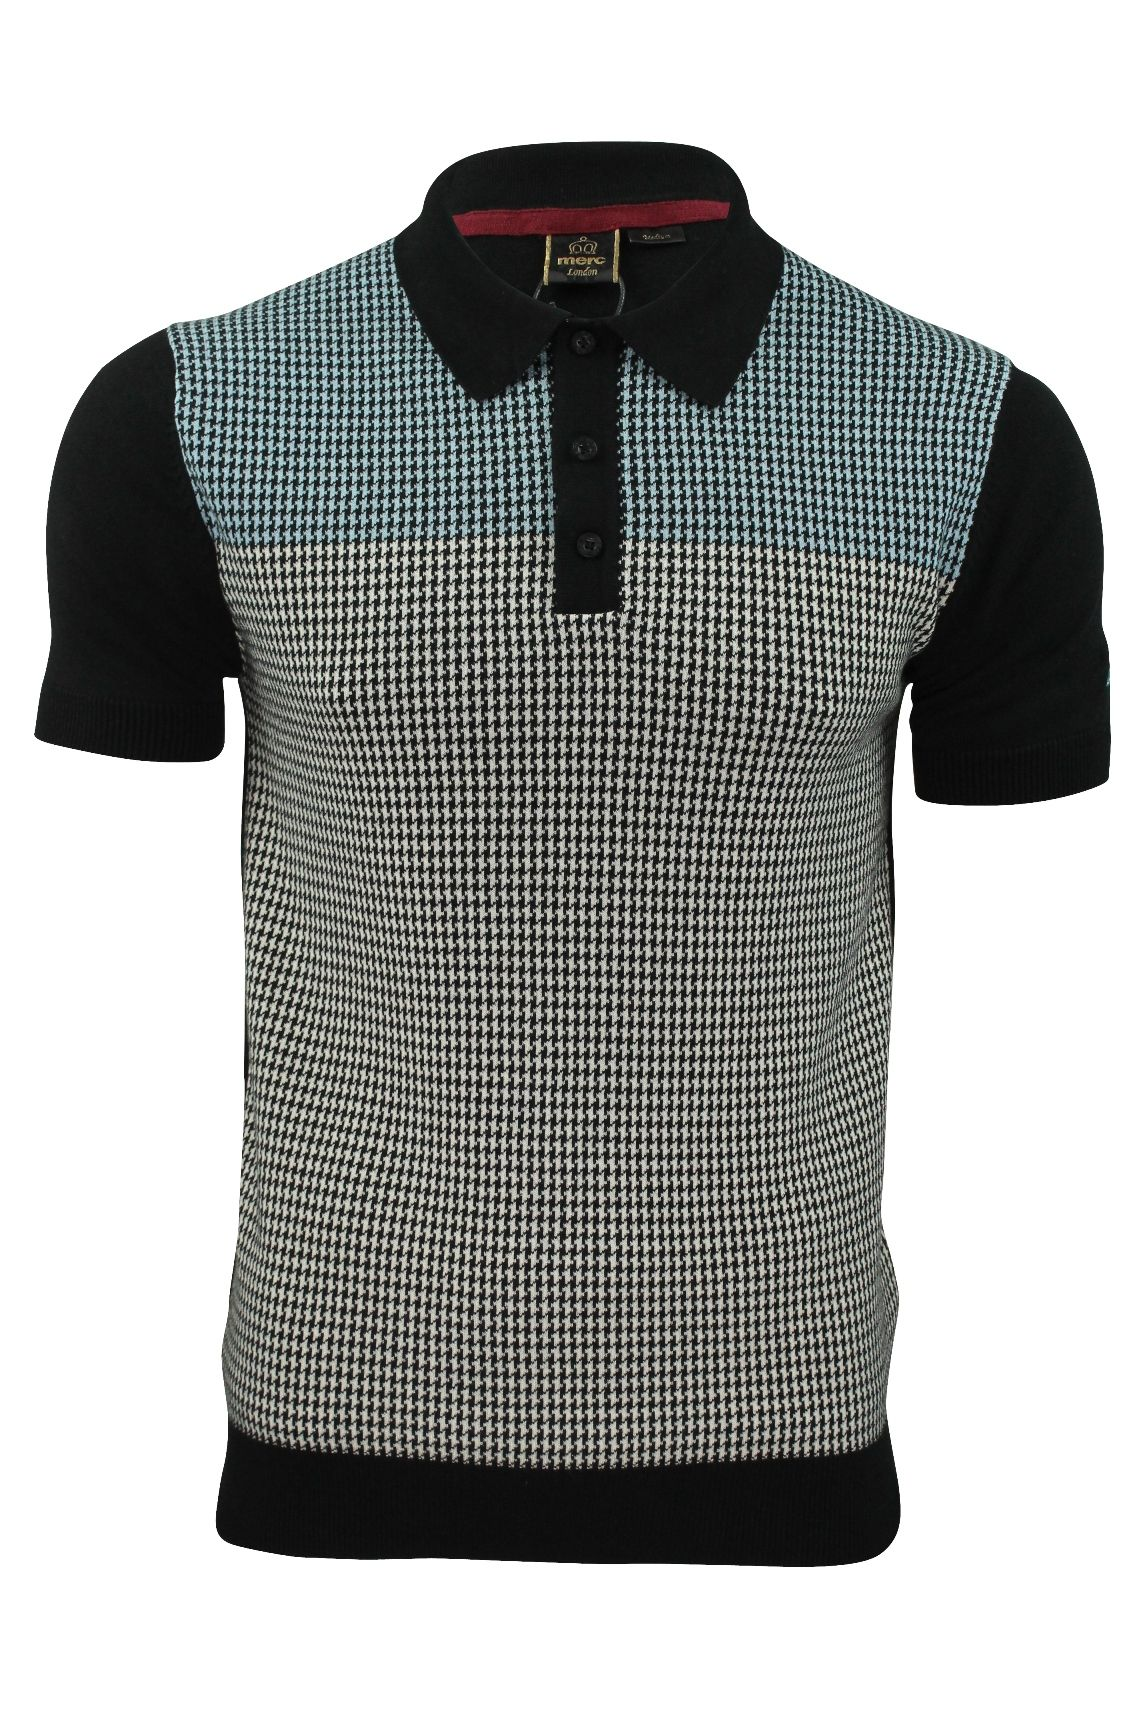 e418078452bc Mens Knit Polo Shirt by Merc  Parish  Dog Tooth Check in 2019